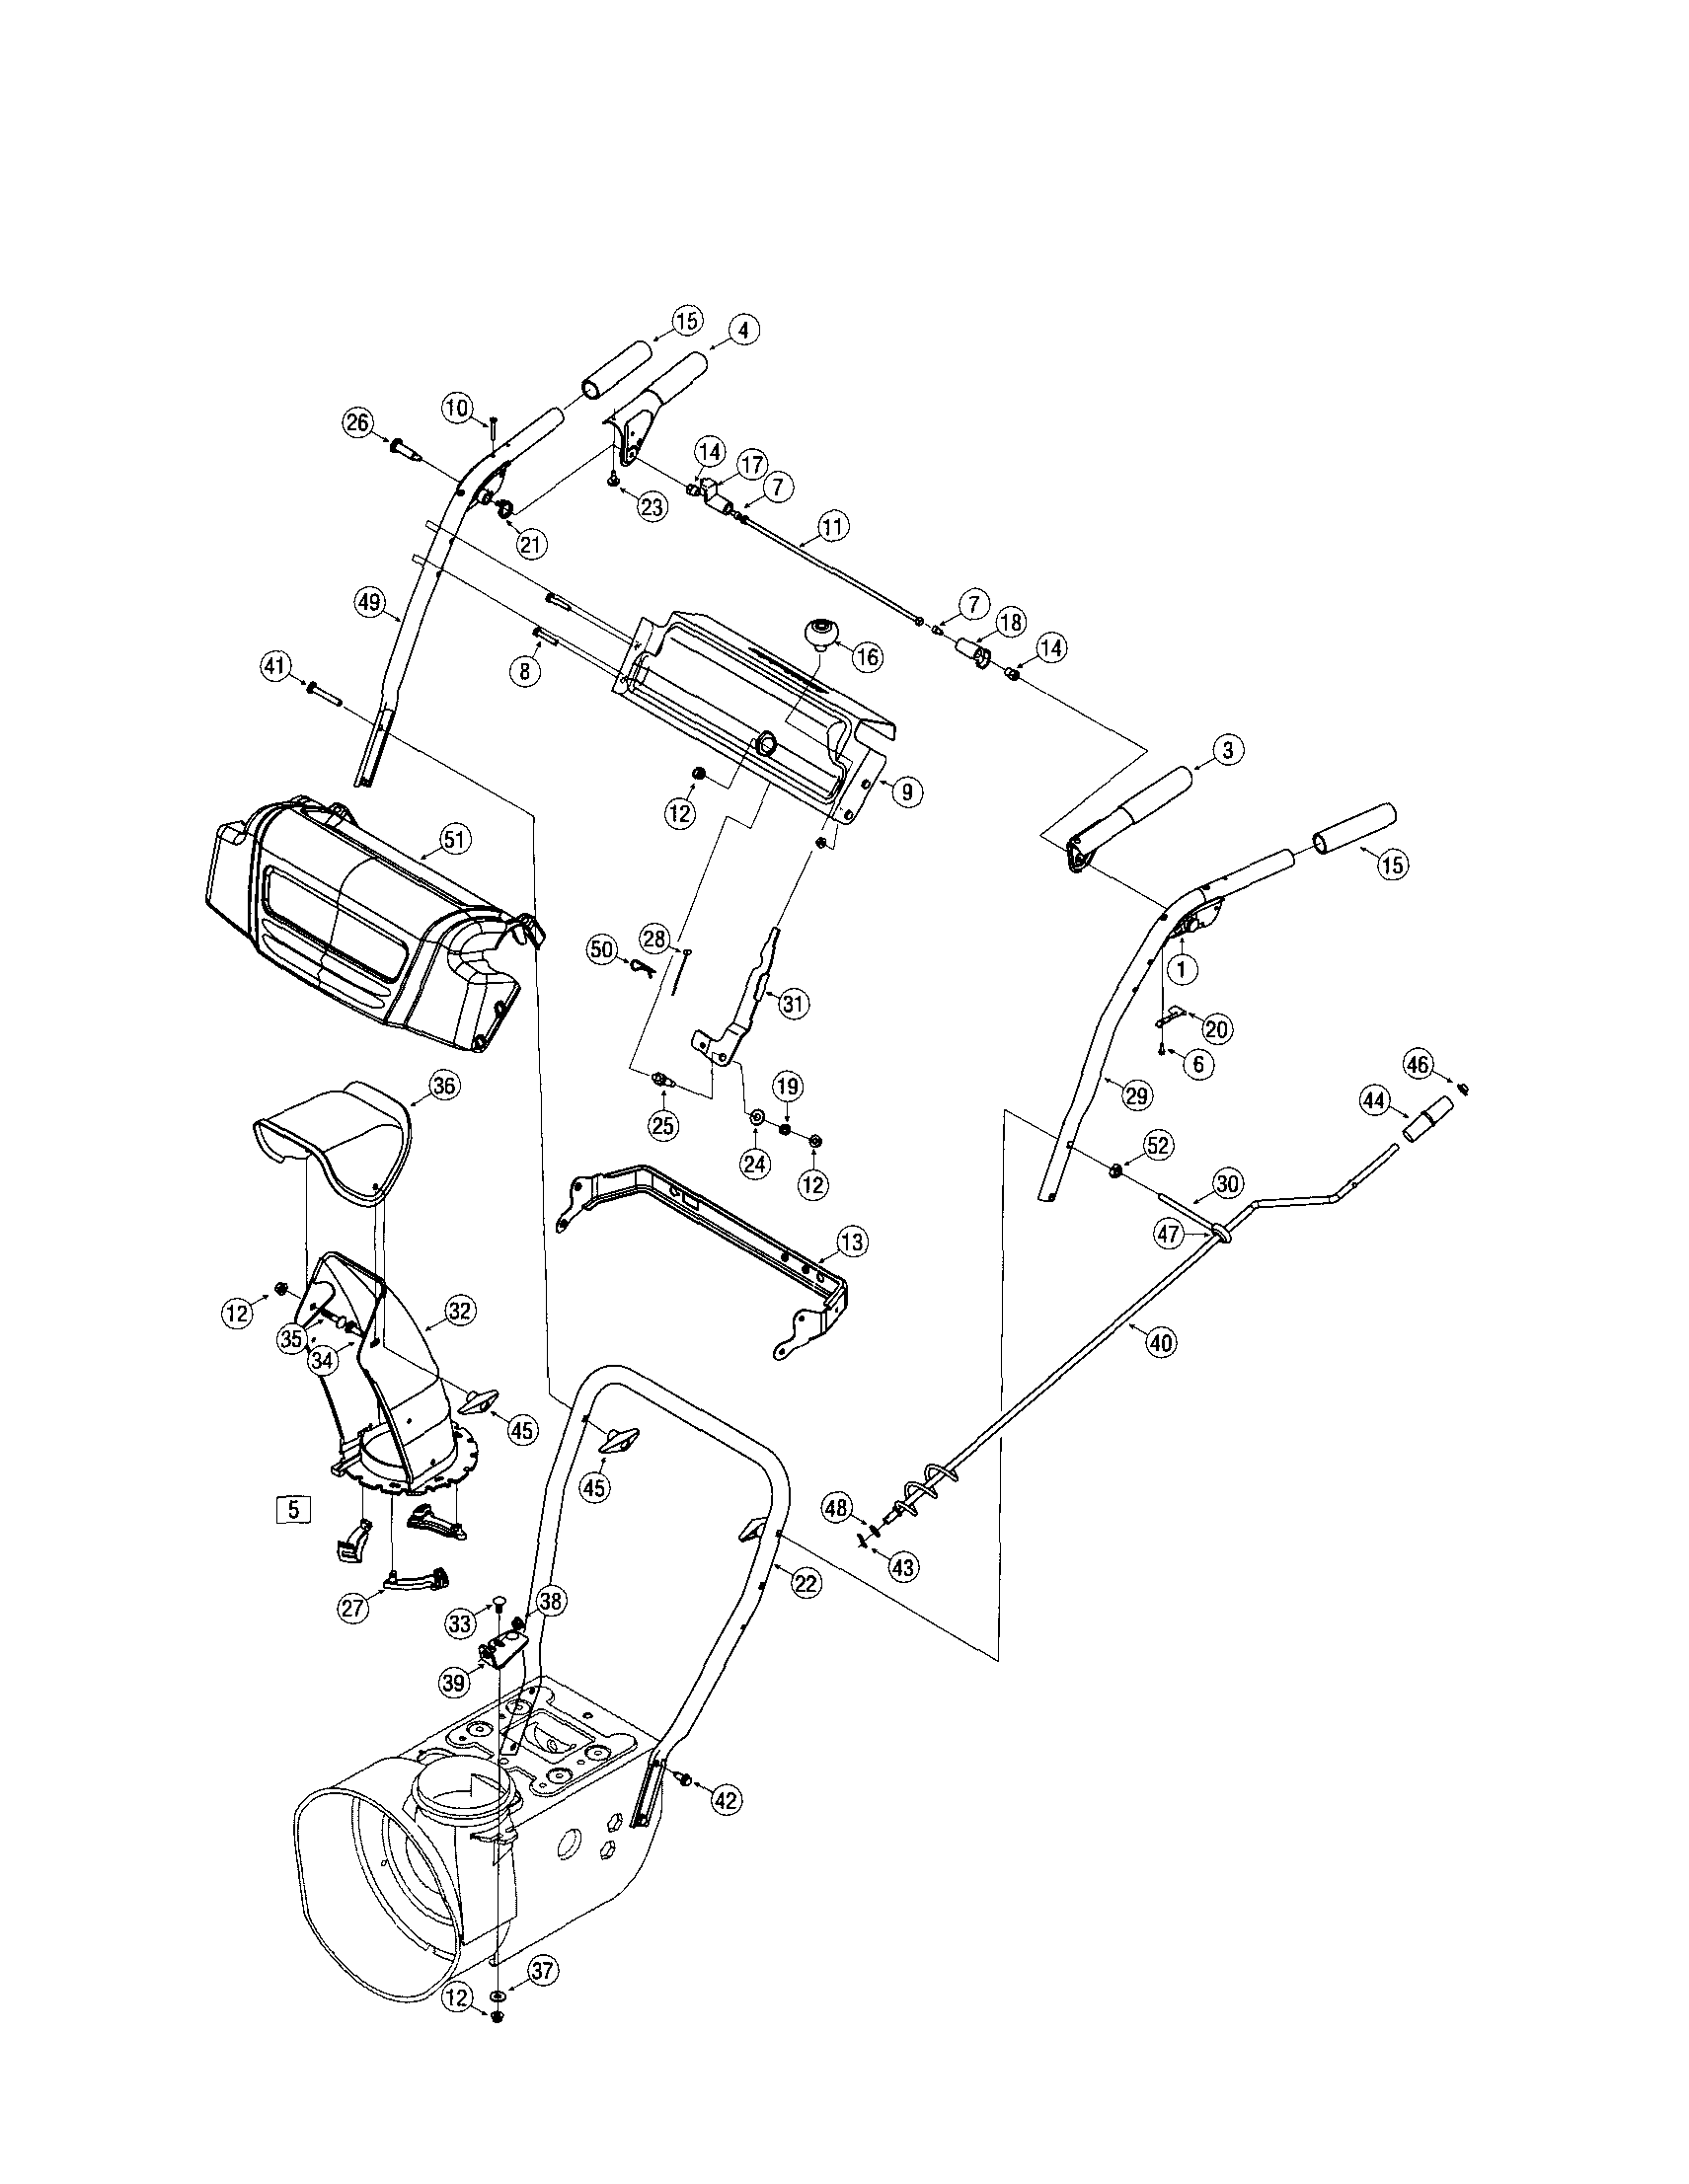 HANDLES Diagram & Parts List for Model 31as6weg799 Mtd